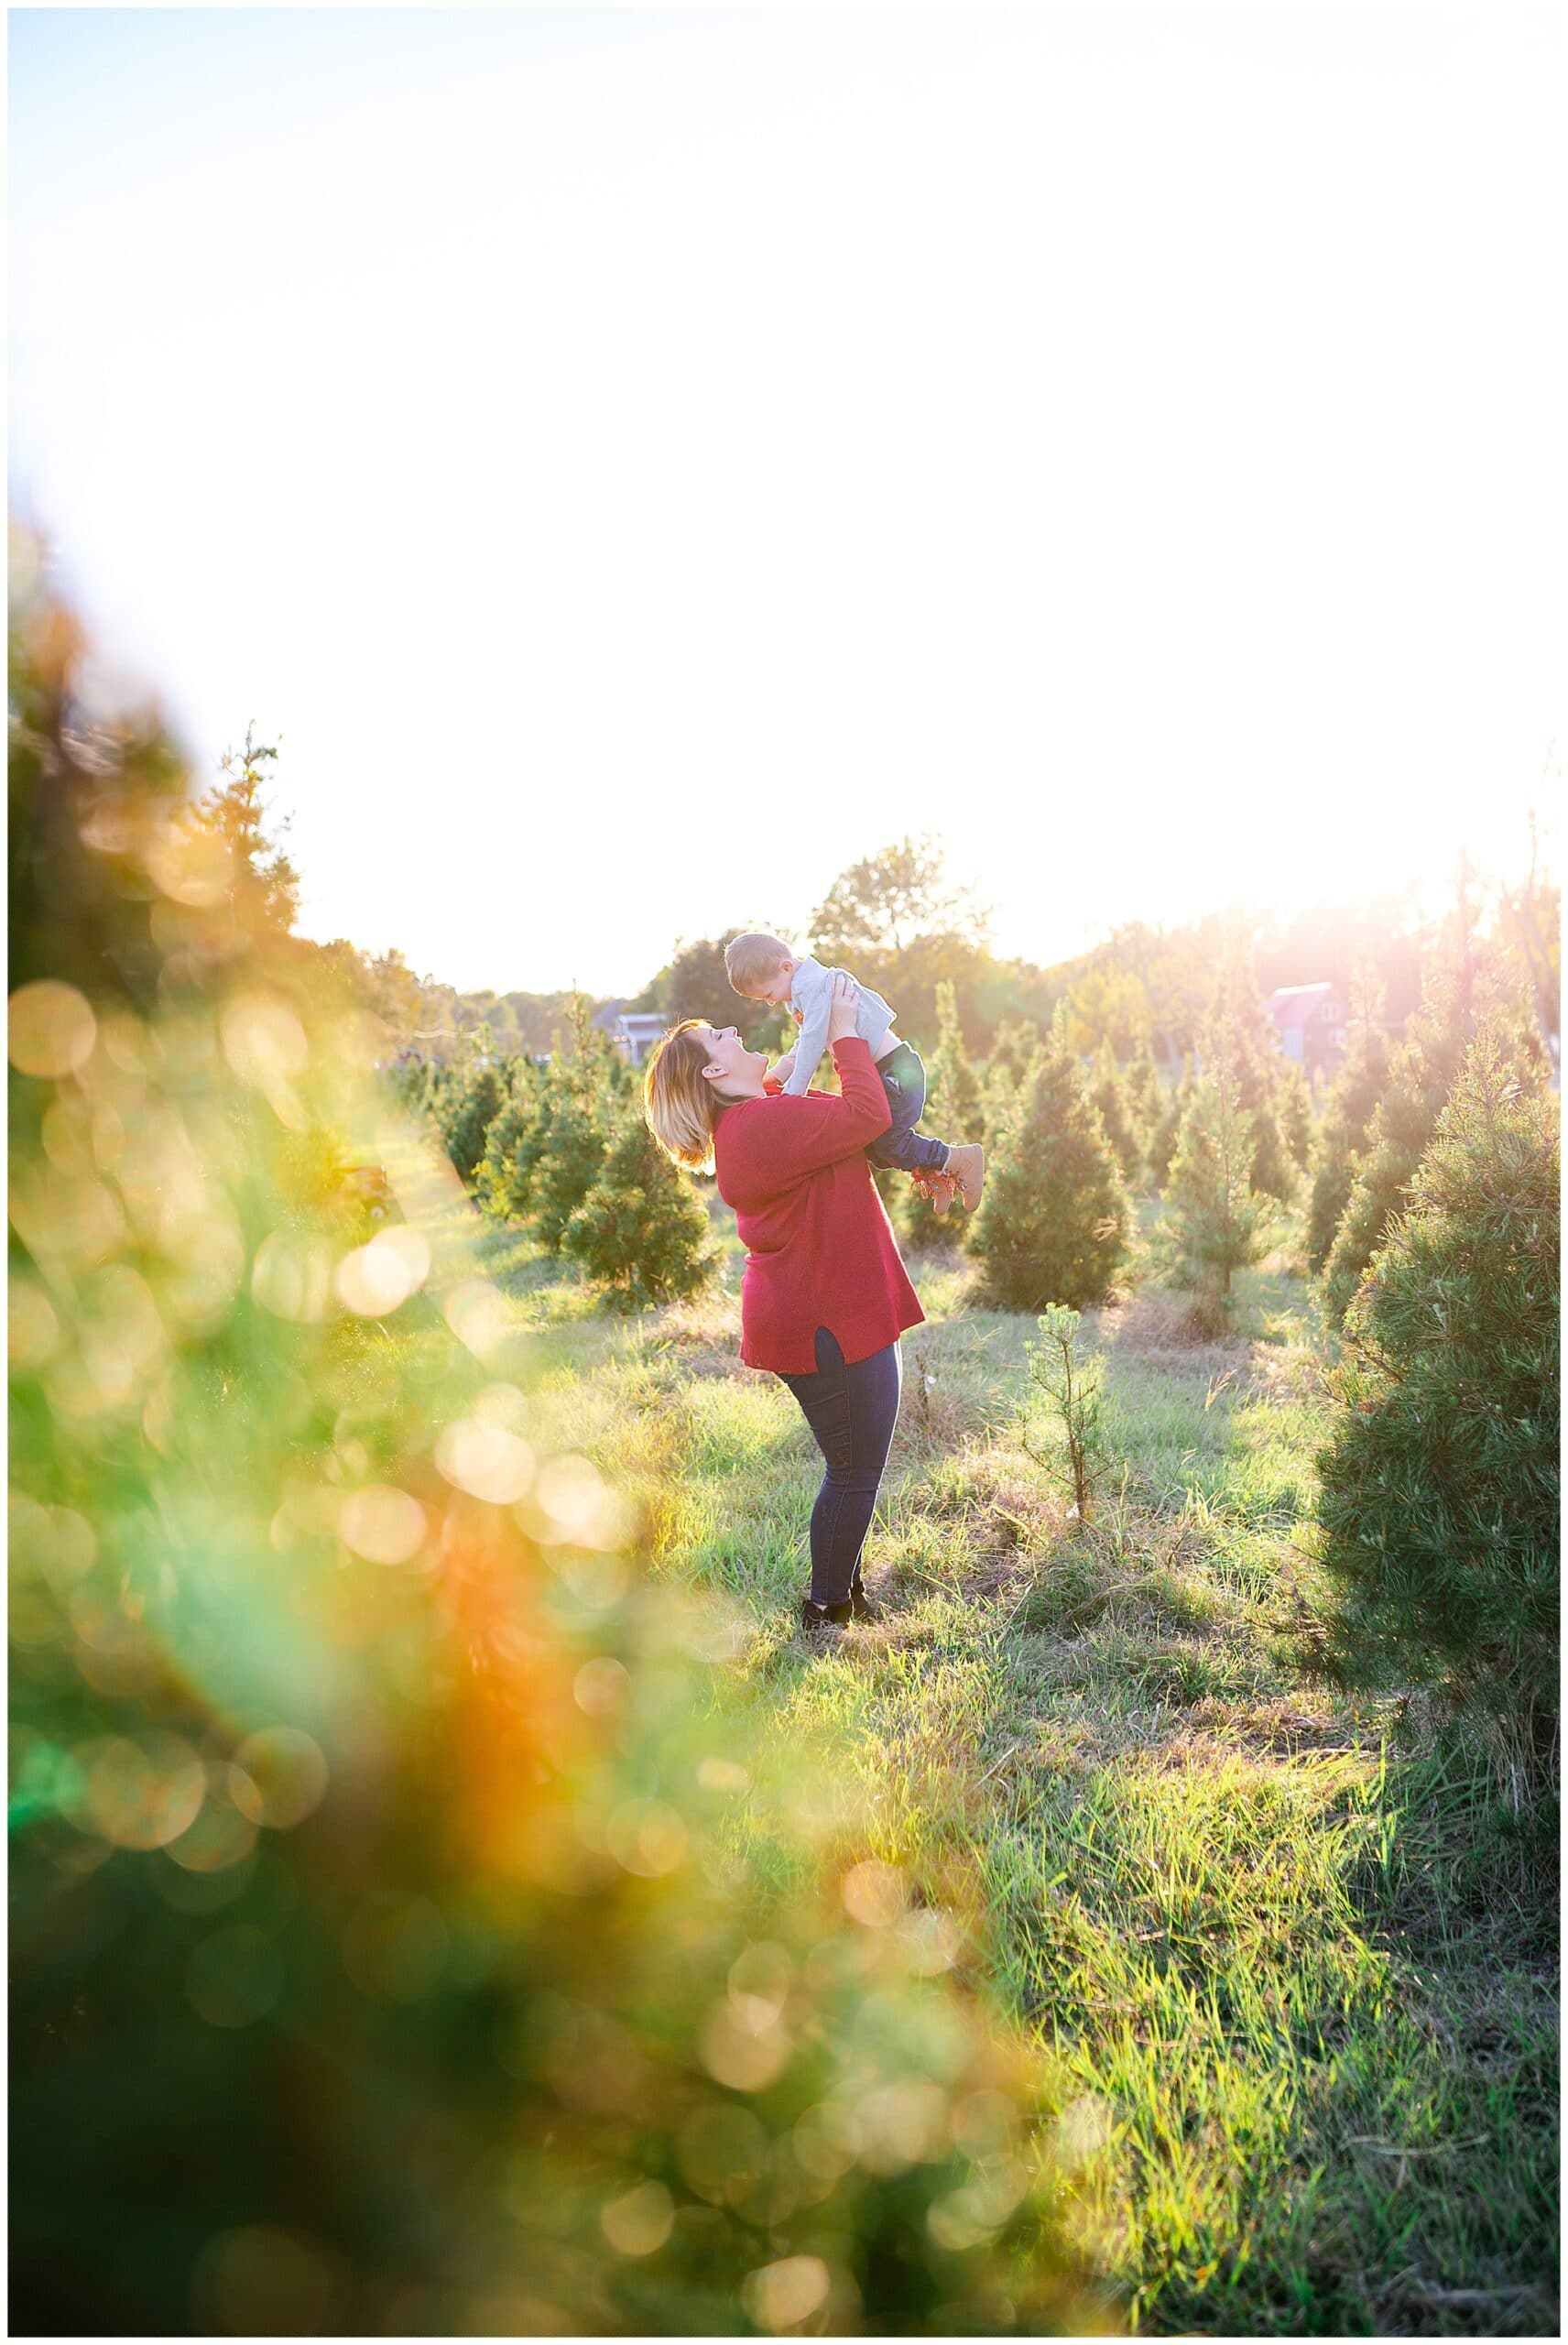 mom and son posing at Christmas tree farm for family portraits by Swish and Click Photography at Holiday Acres Farm in Manvel Texas